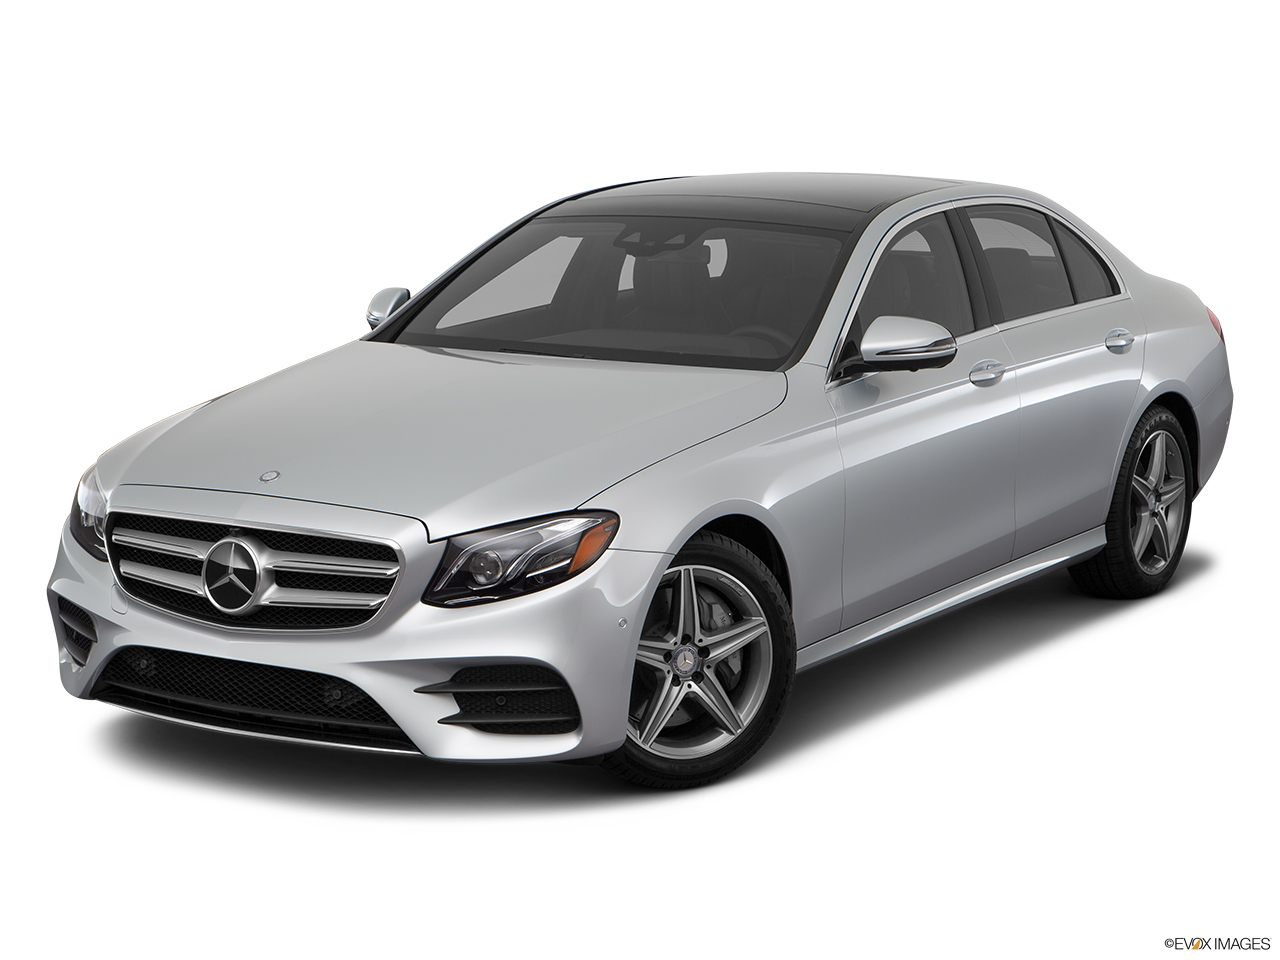 Mercedes benz e class saloon price in egypt new mercedes for Price for mercedes benz